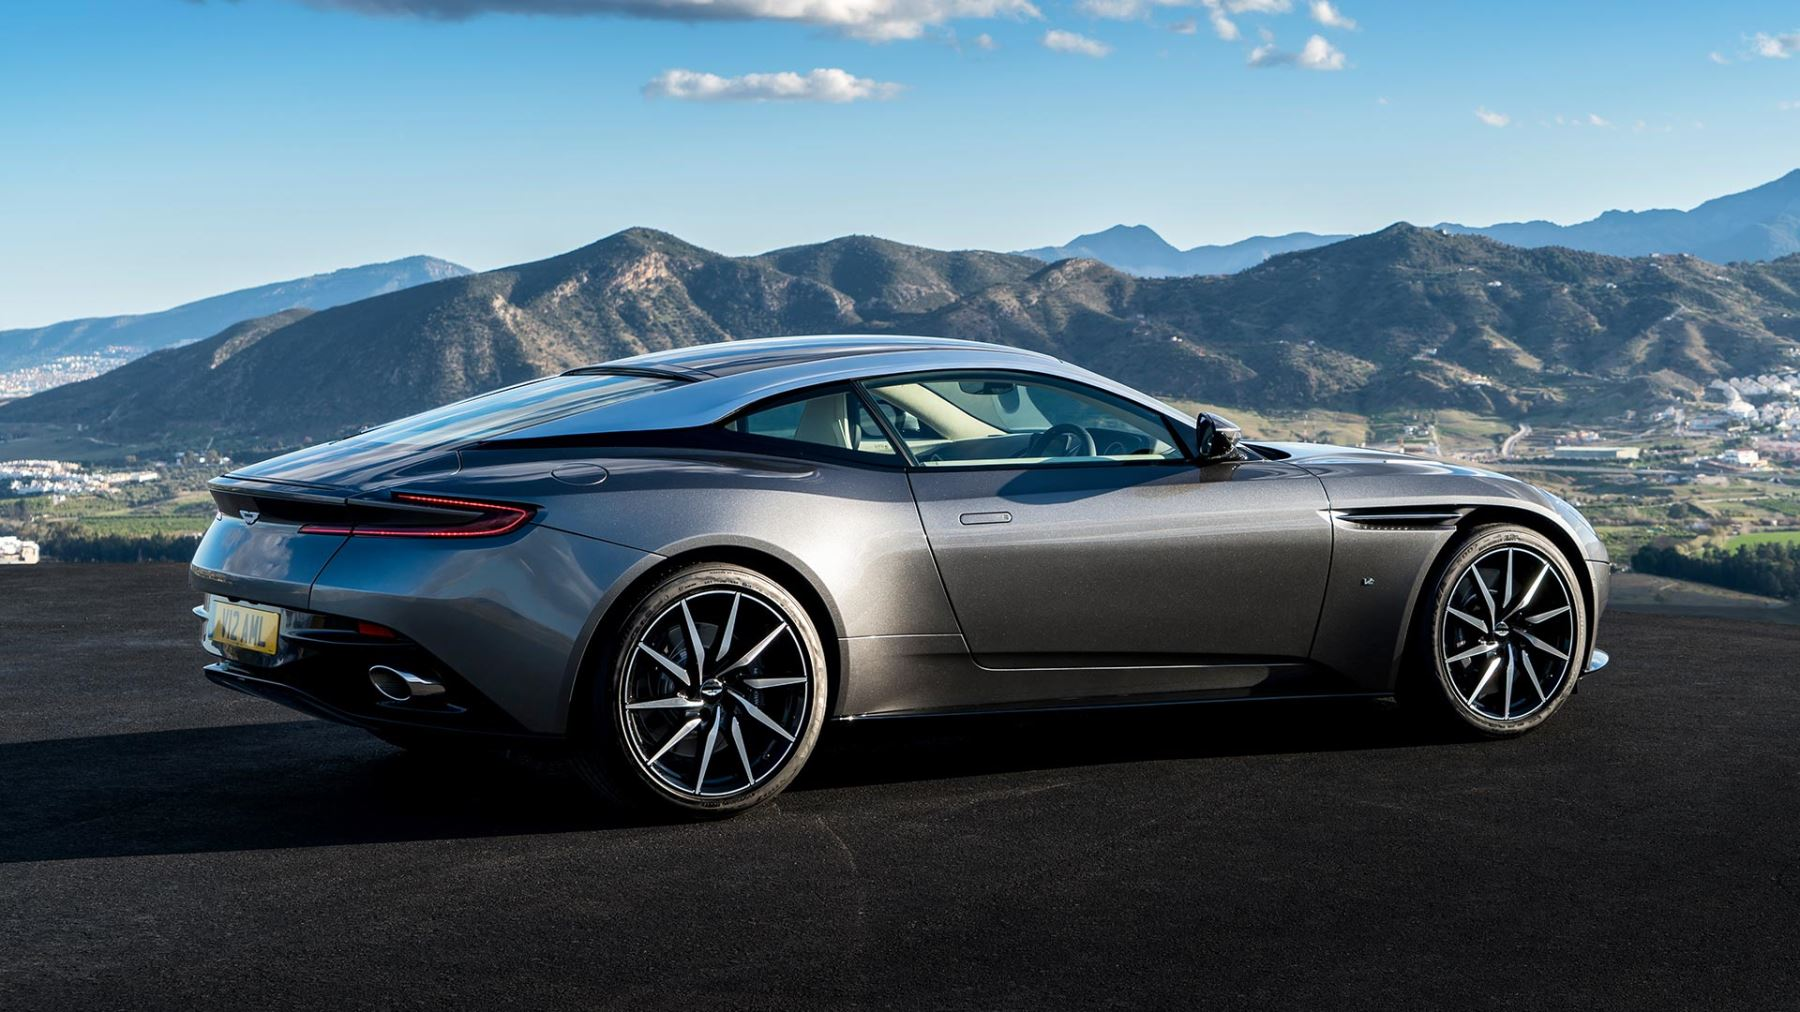 Aston Martin DB11 V12 with 5 years free servicing* image 5